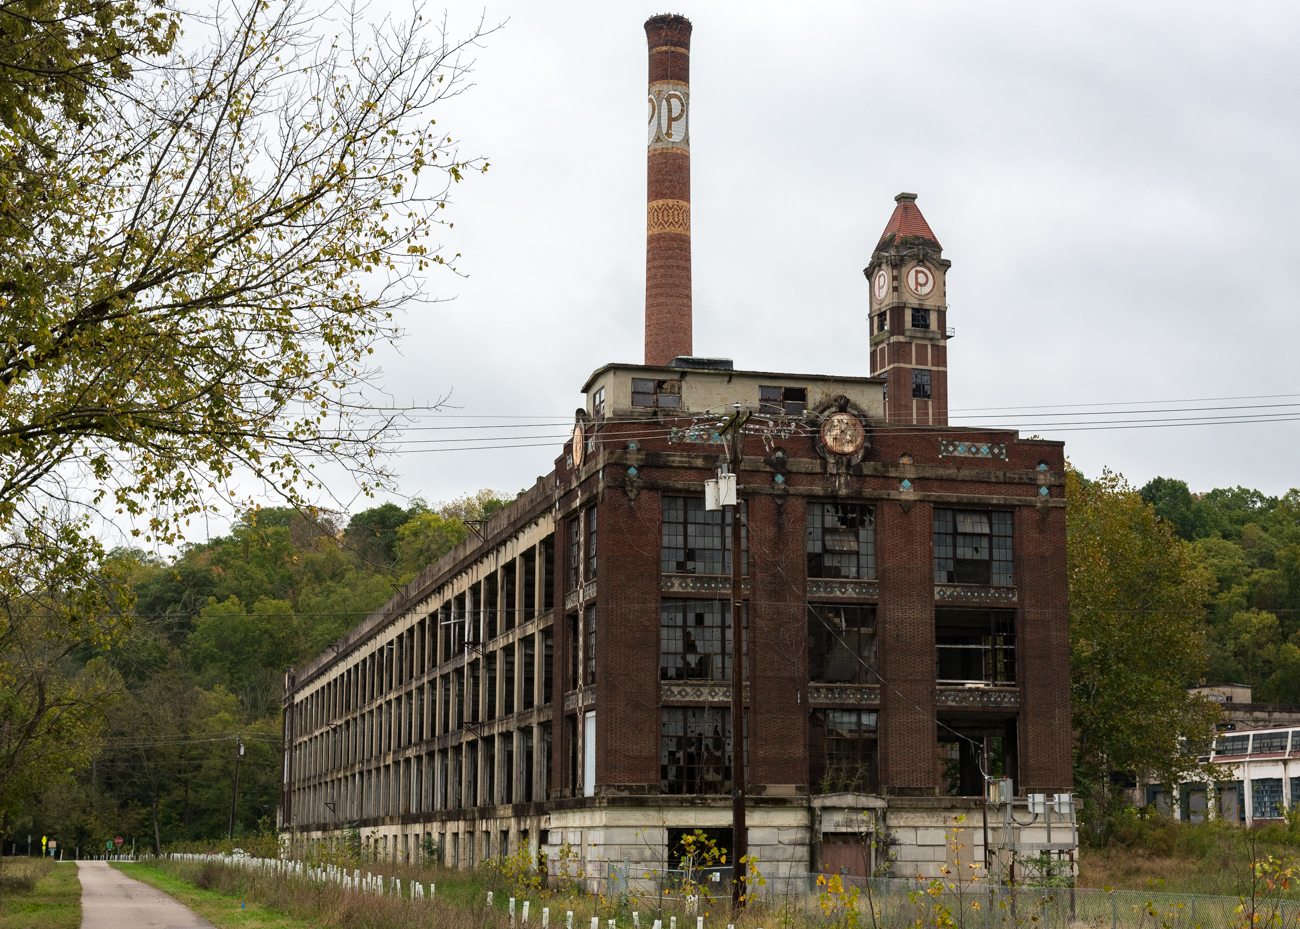 The factory that stands today wasn't there at the beginning of the company. On July 15, 1890, a series of events caused an explosion that killed 12 people and decimated most of the plant's wooden buildings. The concrete and brick building that stands today was erected after the turn of the century. / Image: Phil Armstrong, Cincinnati Refined // Published: 10.13.17